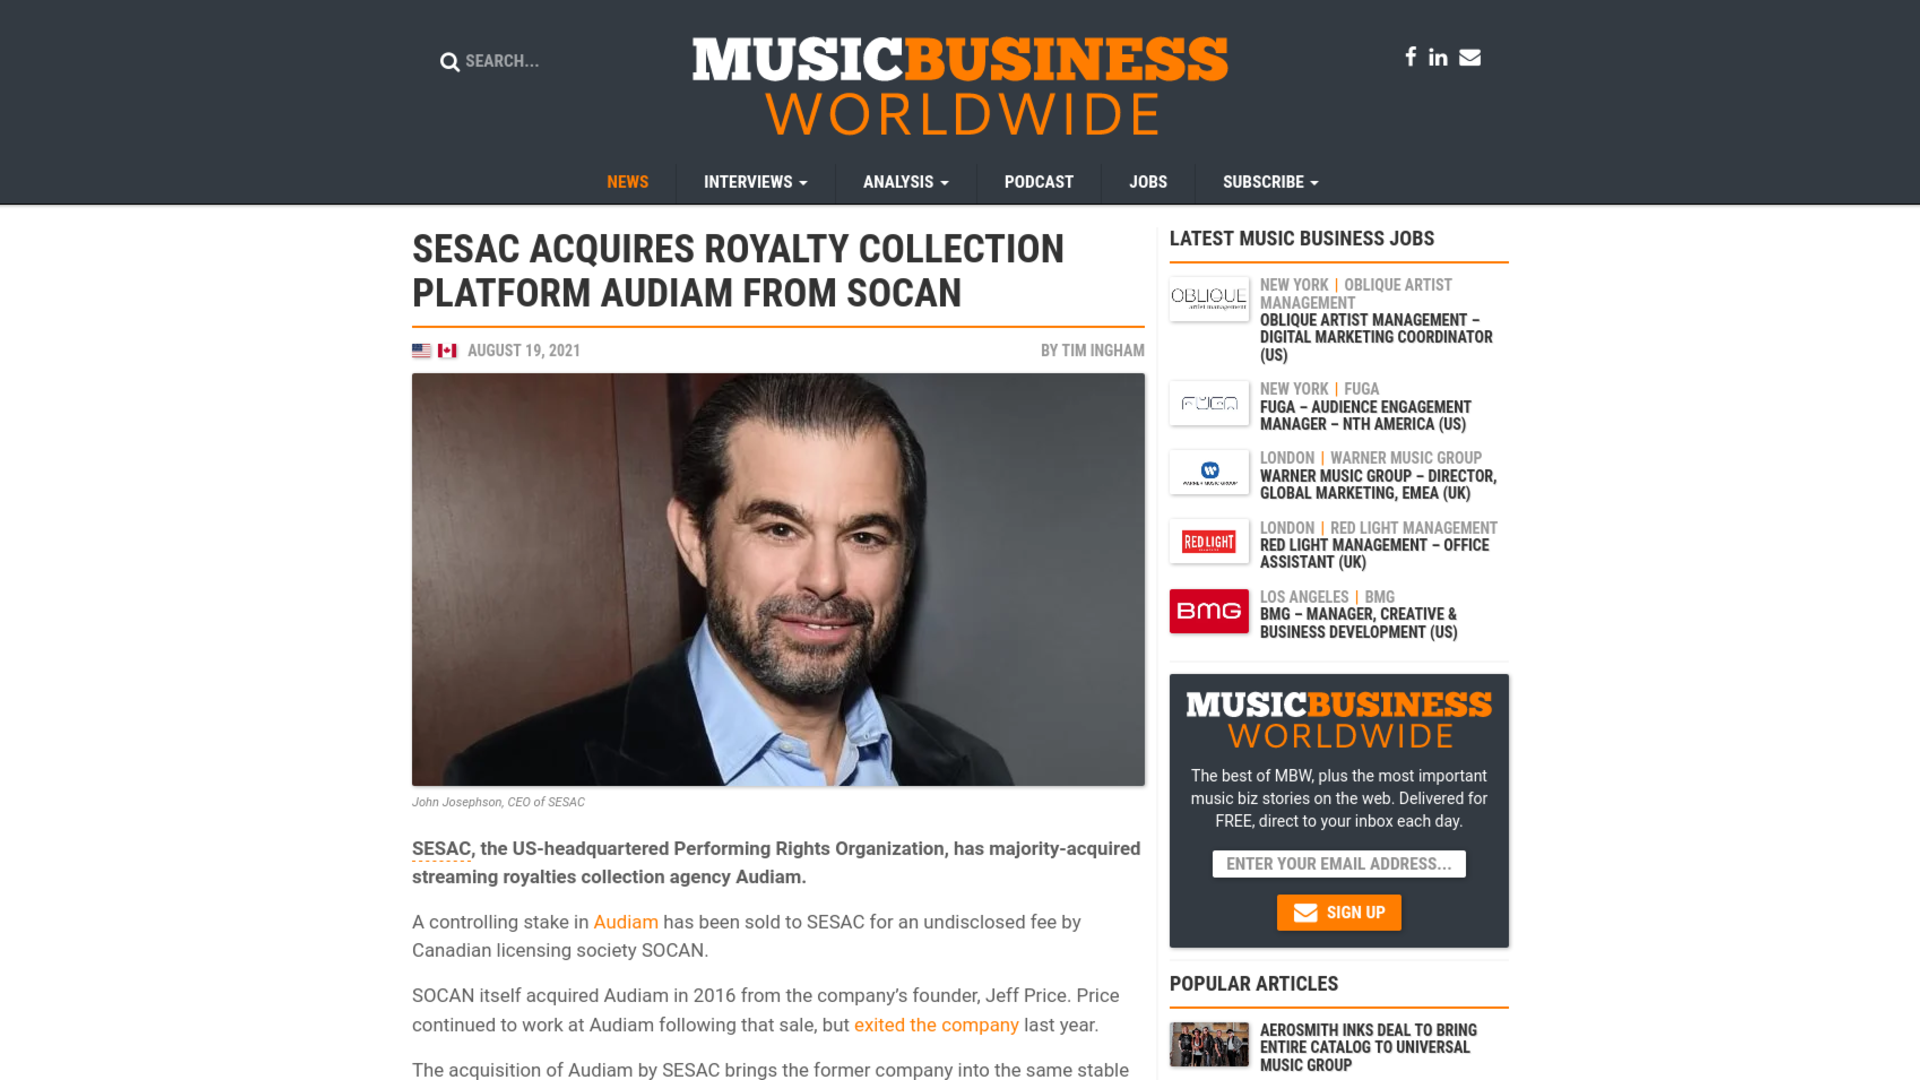 Fairness Rocks News SESAC acquires royalty collection platform Audiam from SOCAN